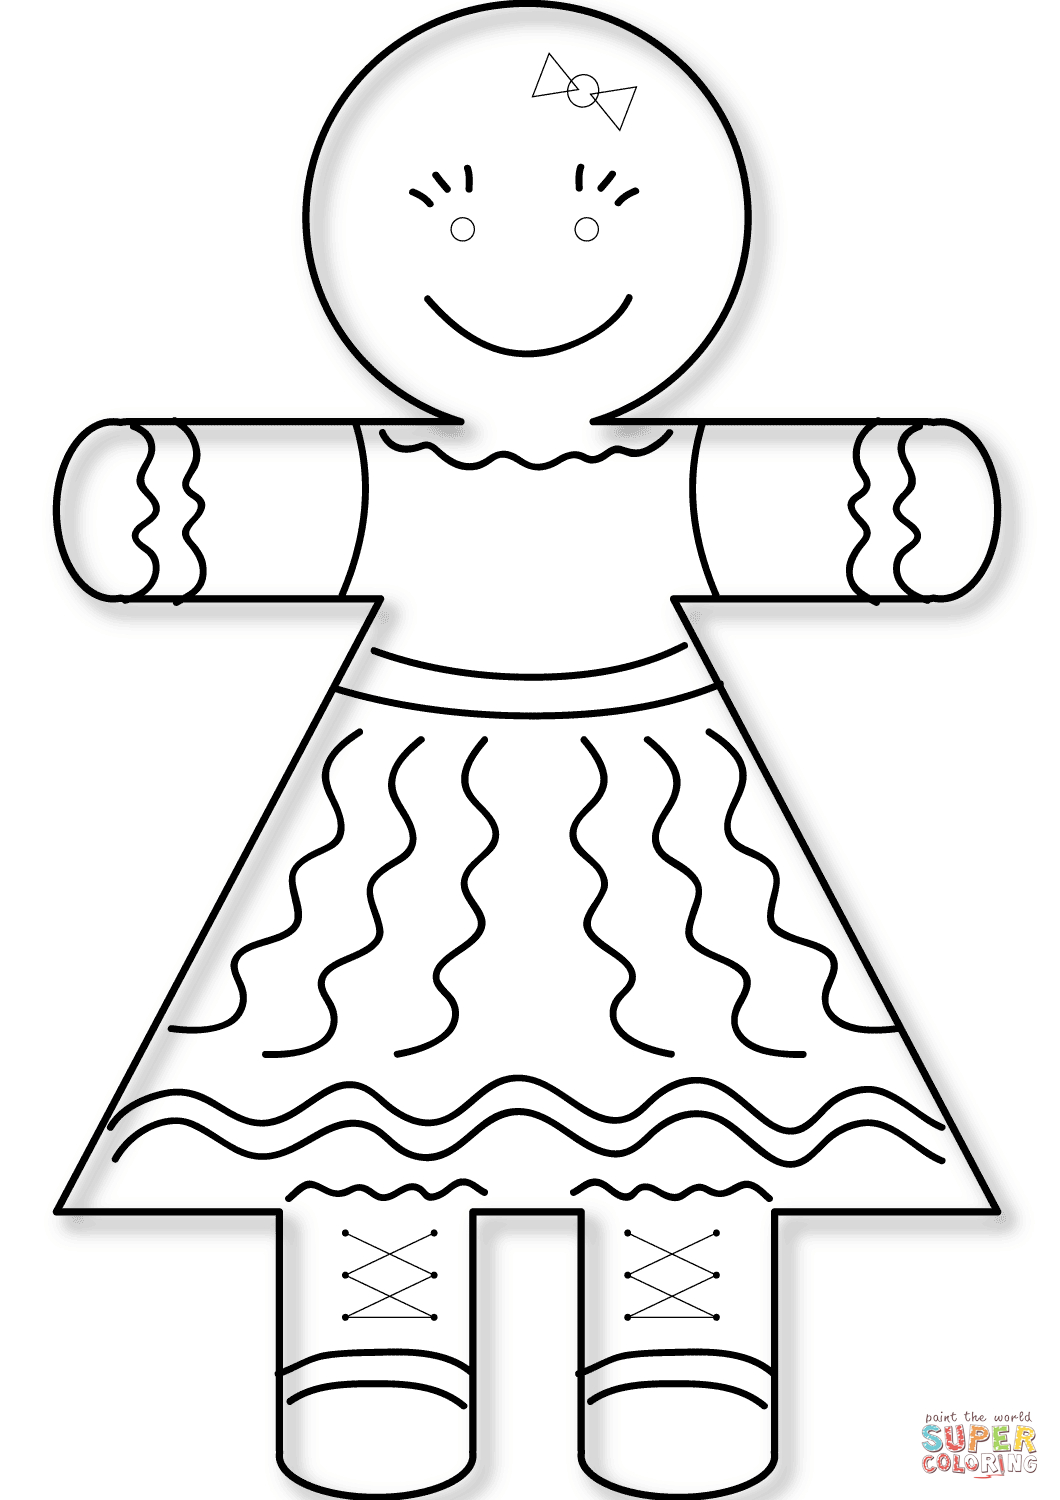 Gingerbread Girl Coloring Page | Free Printable Coloring Pages - Gingerbread Template Free Printable